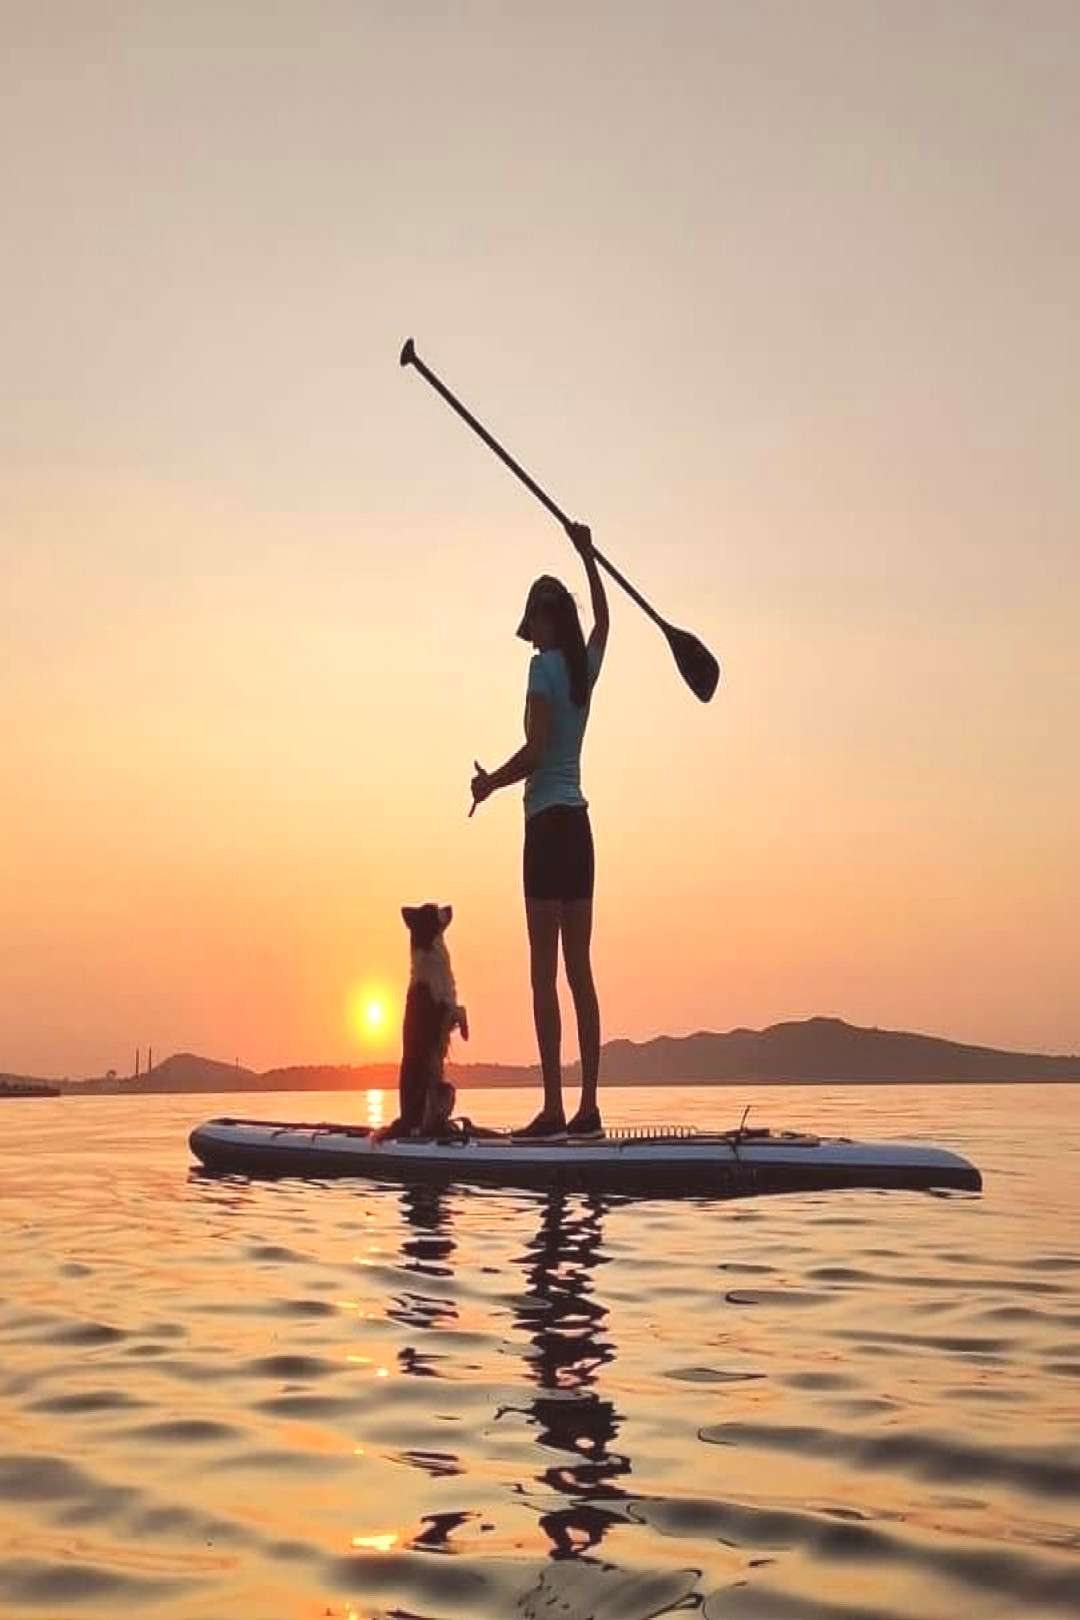 Another day,another sunset! Love to paddle with dog. Photo @sunsupmcz paddle board up paddle board